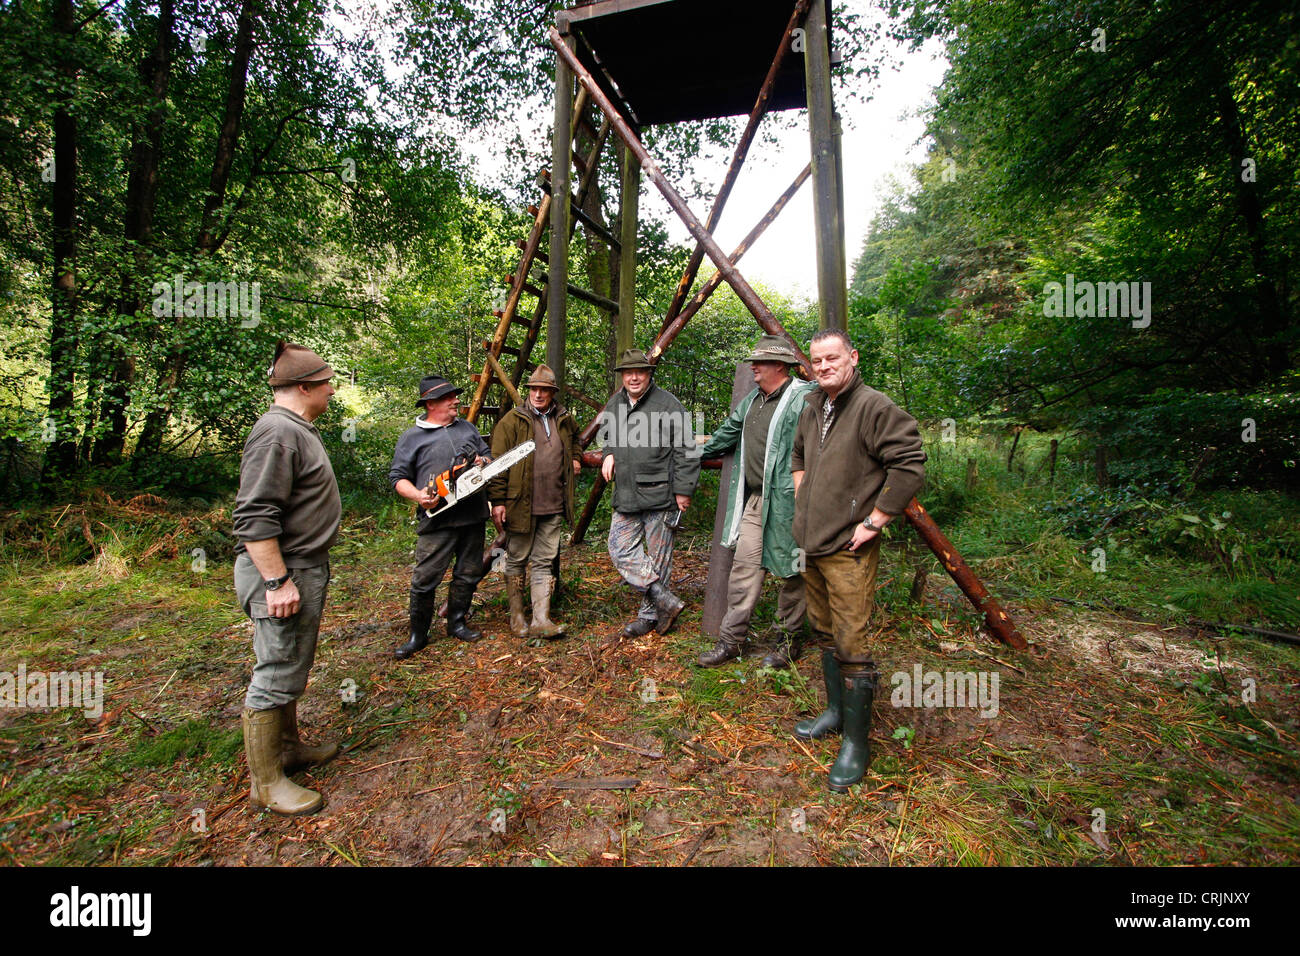 constructing a raised hide - group photo after finishing the substructure, Germany - Stock Image